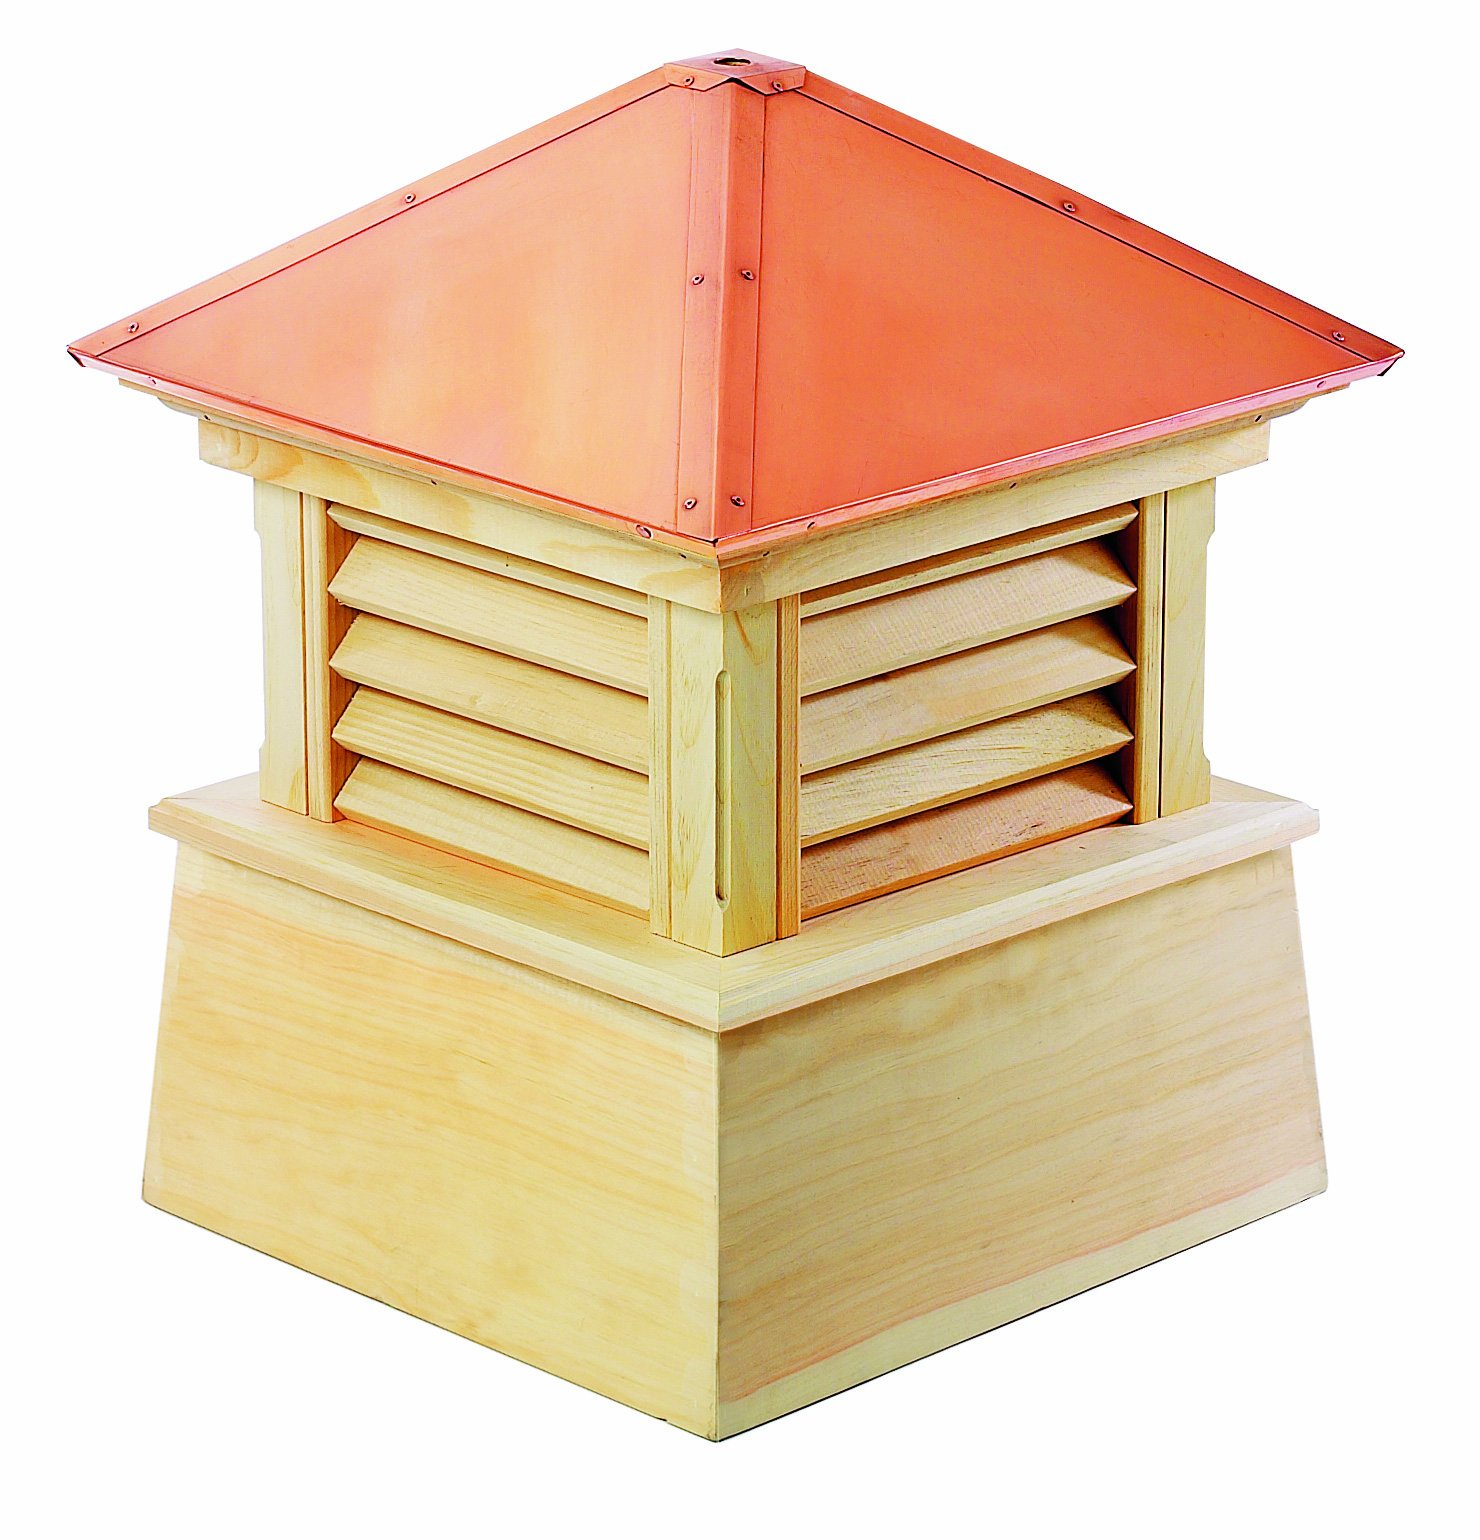 Good Directions Manchester Louvered Cupola with Pure Copper Roof, Cypress Wood, 18'' x 22'', Quick Ship, Reinforced Rafters and Louvers, Cupolas by Good Directions